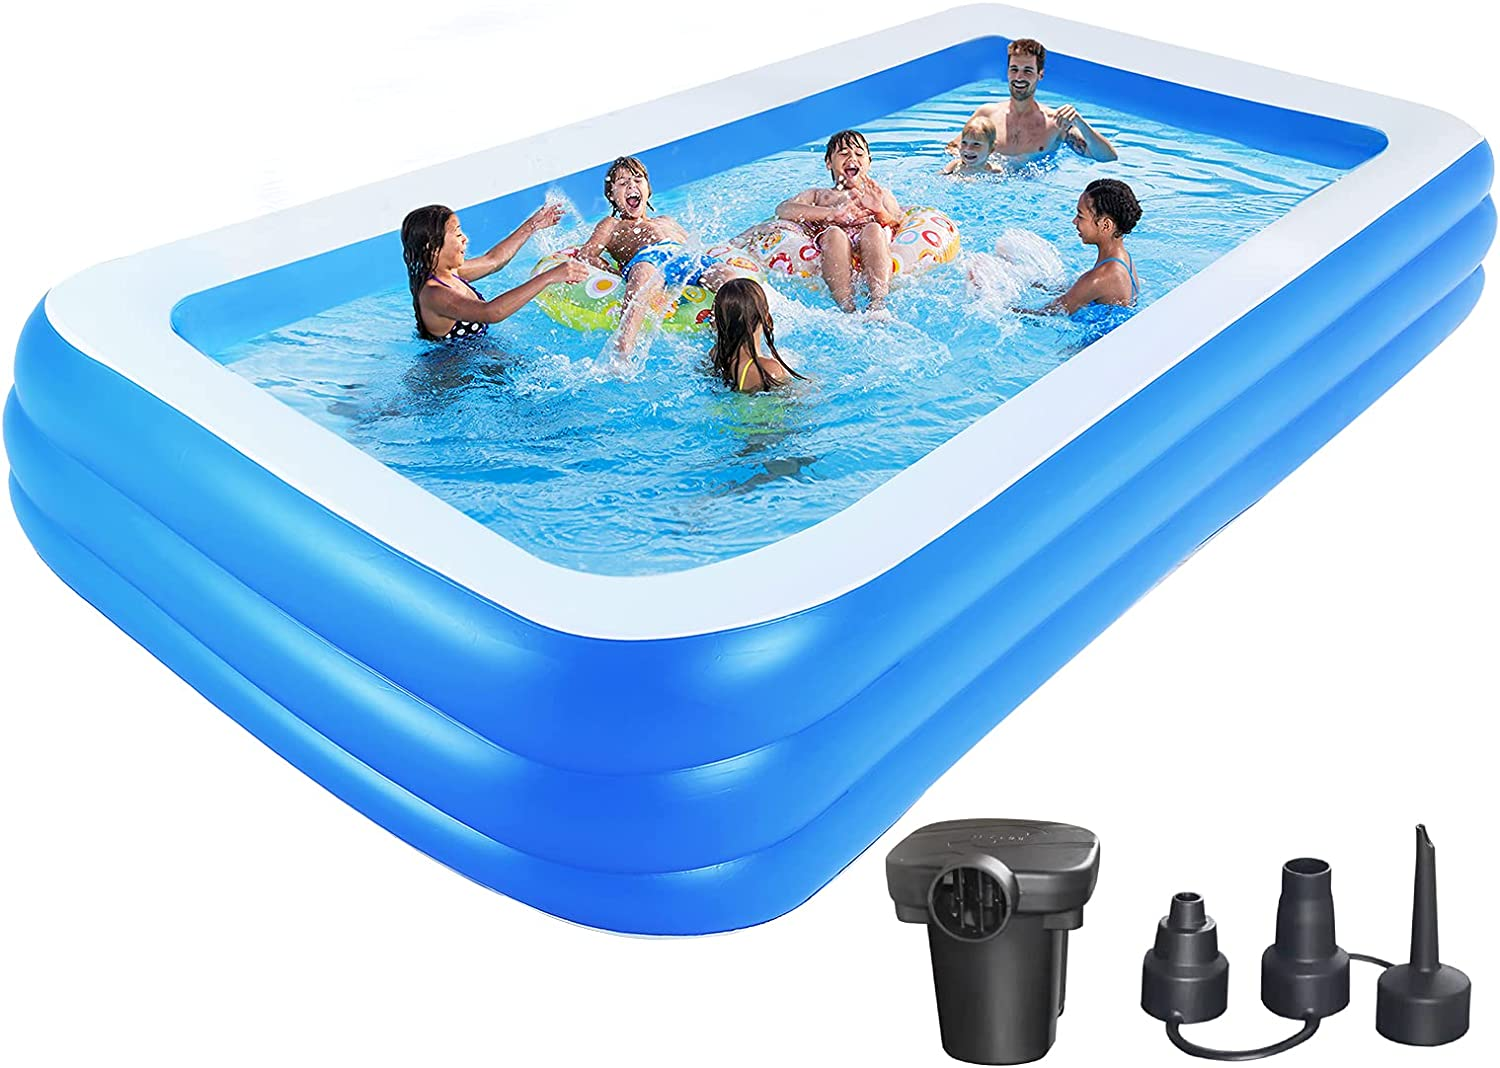 Johomviin Inflatable Swimming Pool, Extra Large 150x72x22 inches Full-Sized Inflatable Pool, Blow Up Pool for Adults Kids, Rectangle Above Ground Pool for Backyard Garden Outdoor, Electric Pump Added